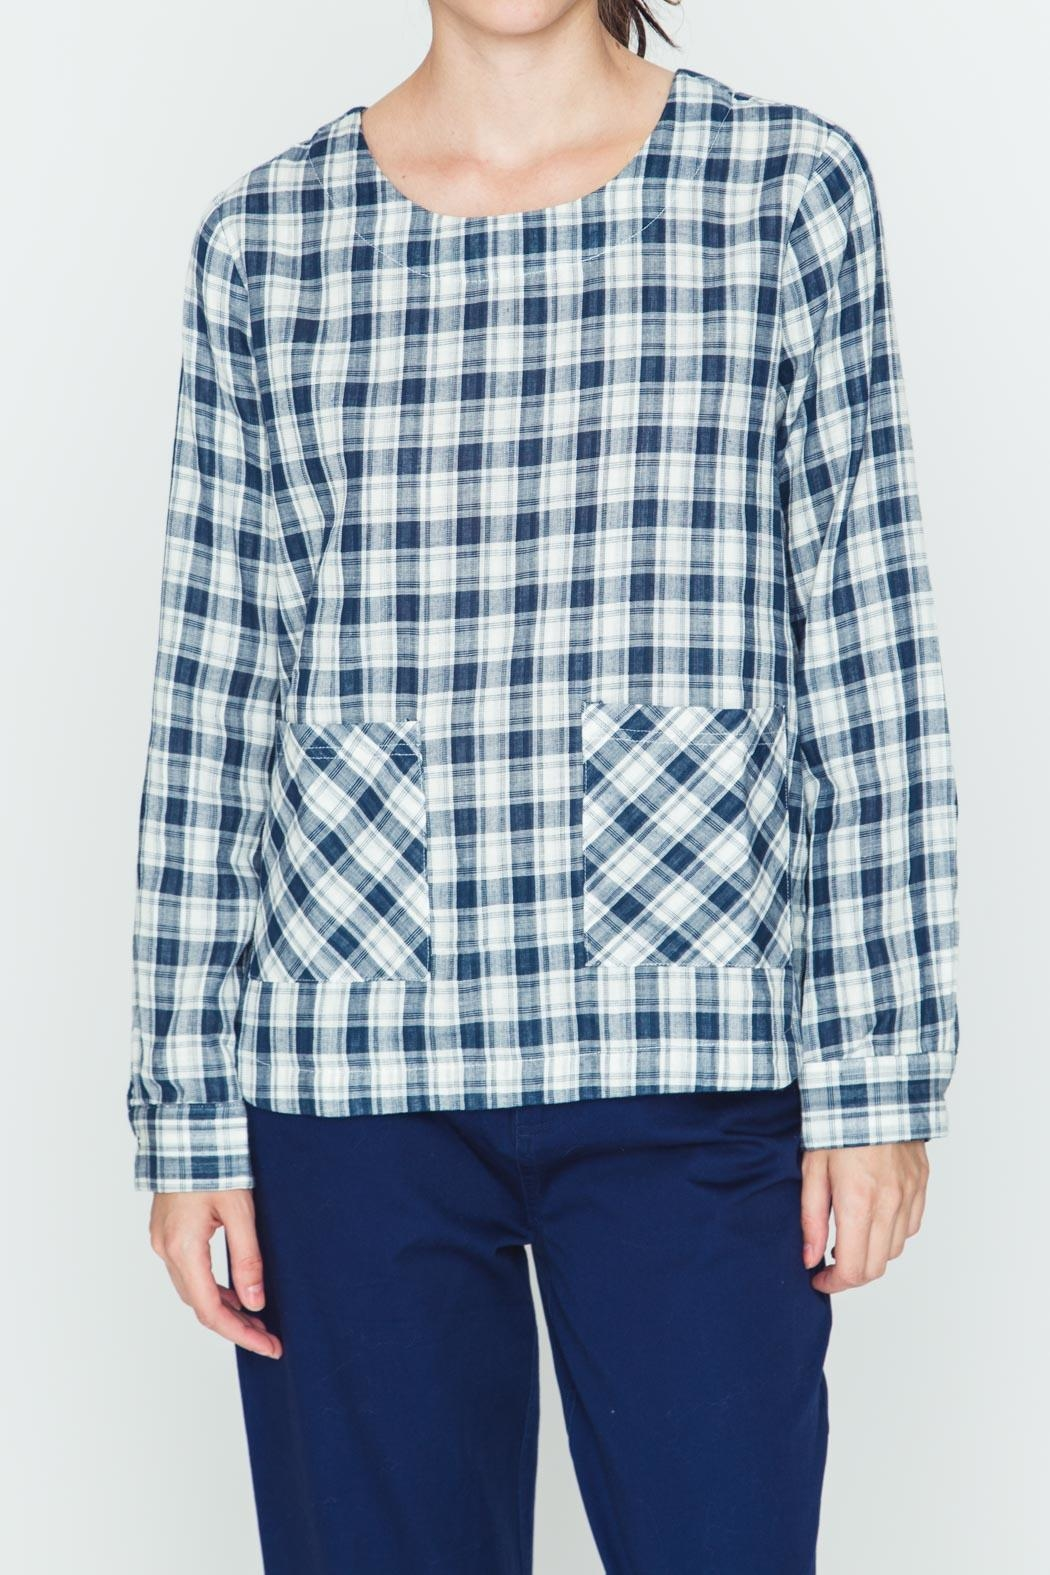 Movint Plaid Navy Shirt - Main Image